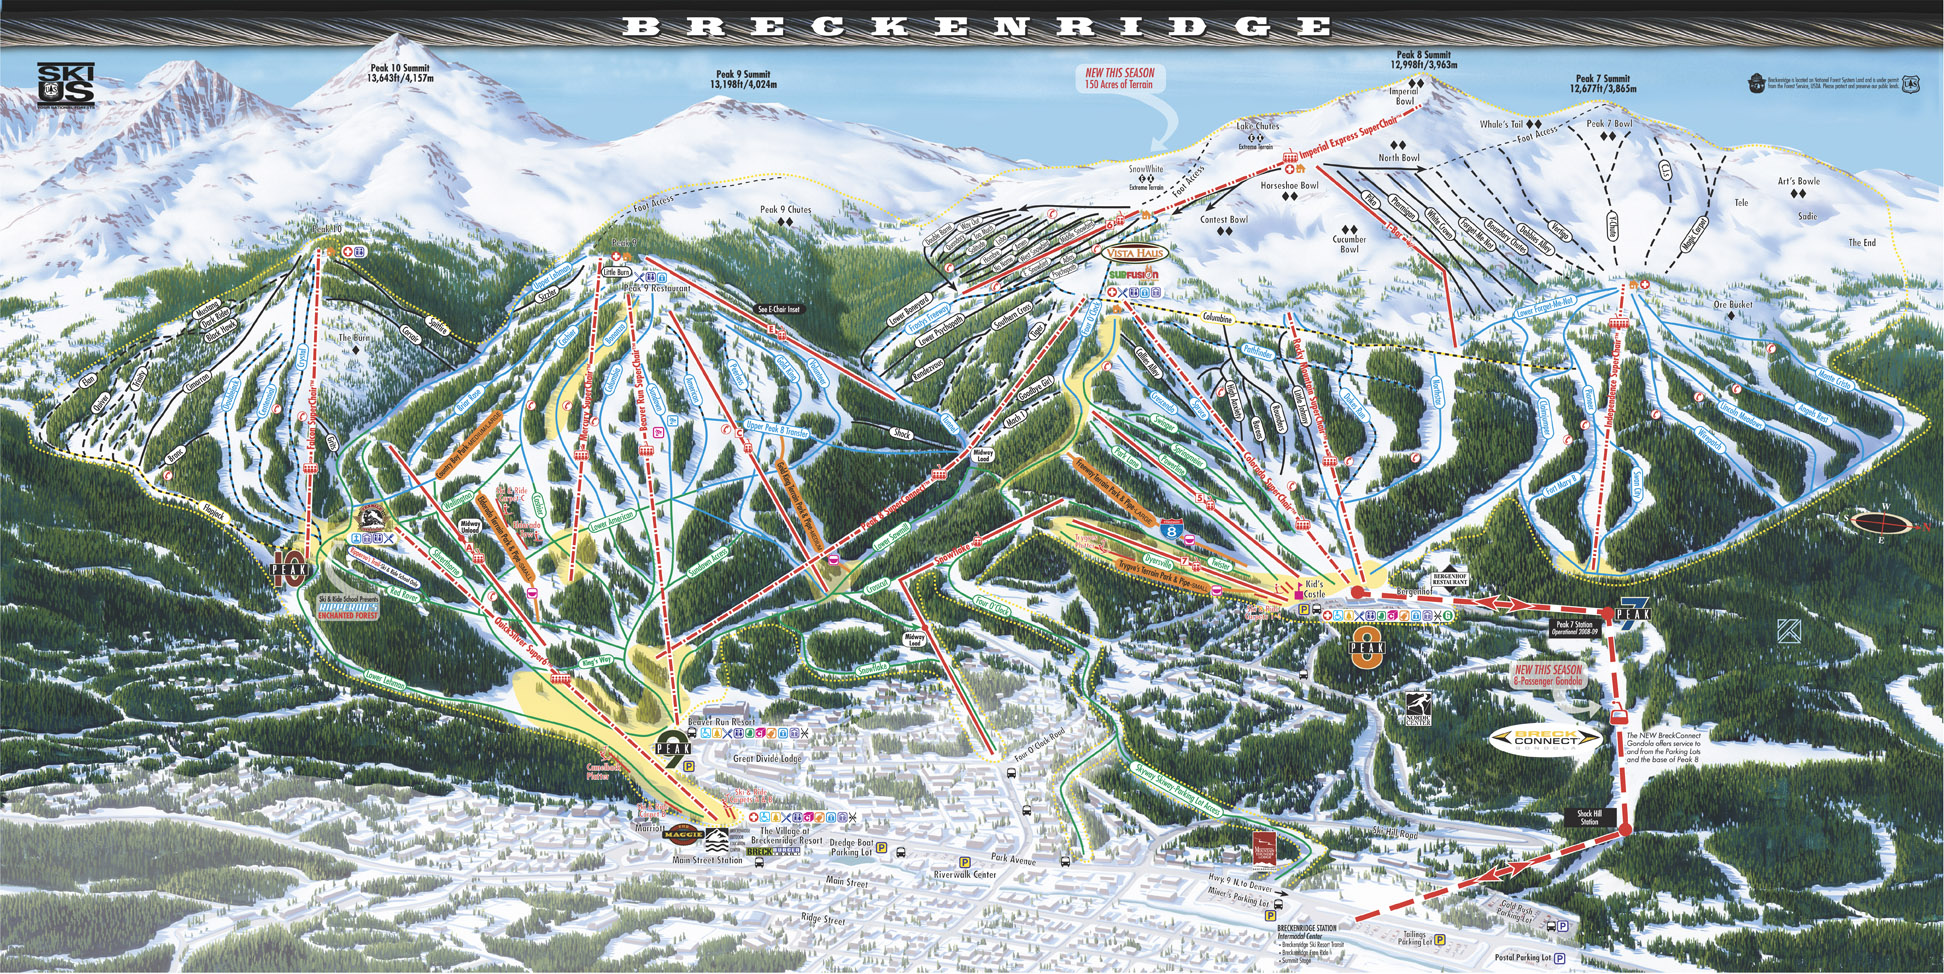 Breckenridge Map Trail Gondola Colorado Ski Slopes CO Breckconnect ...